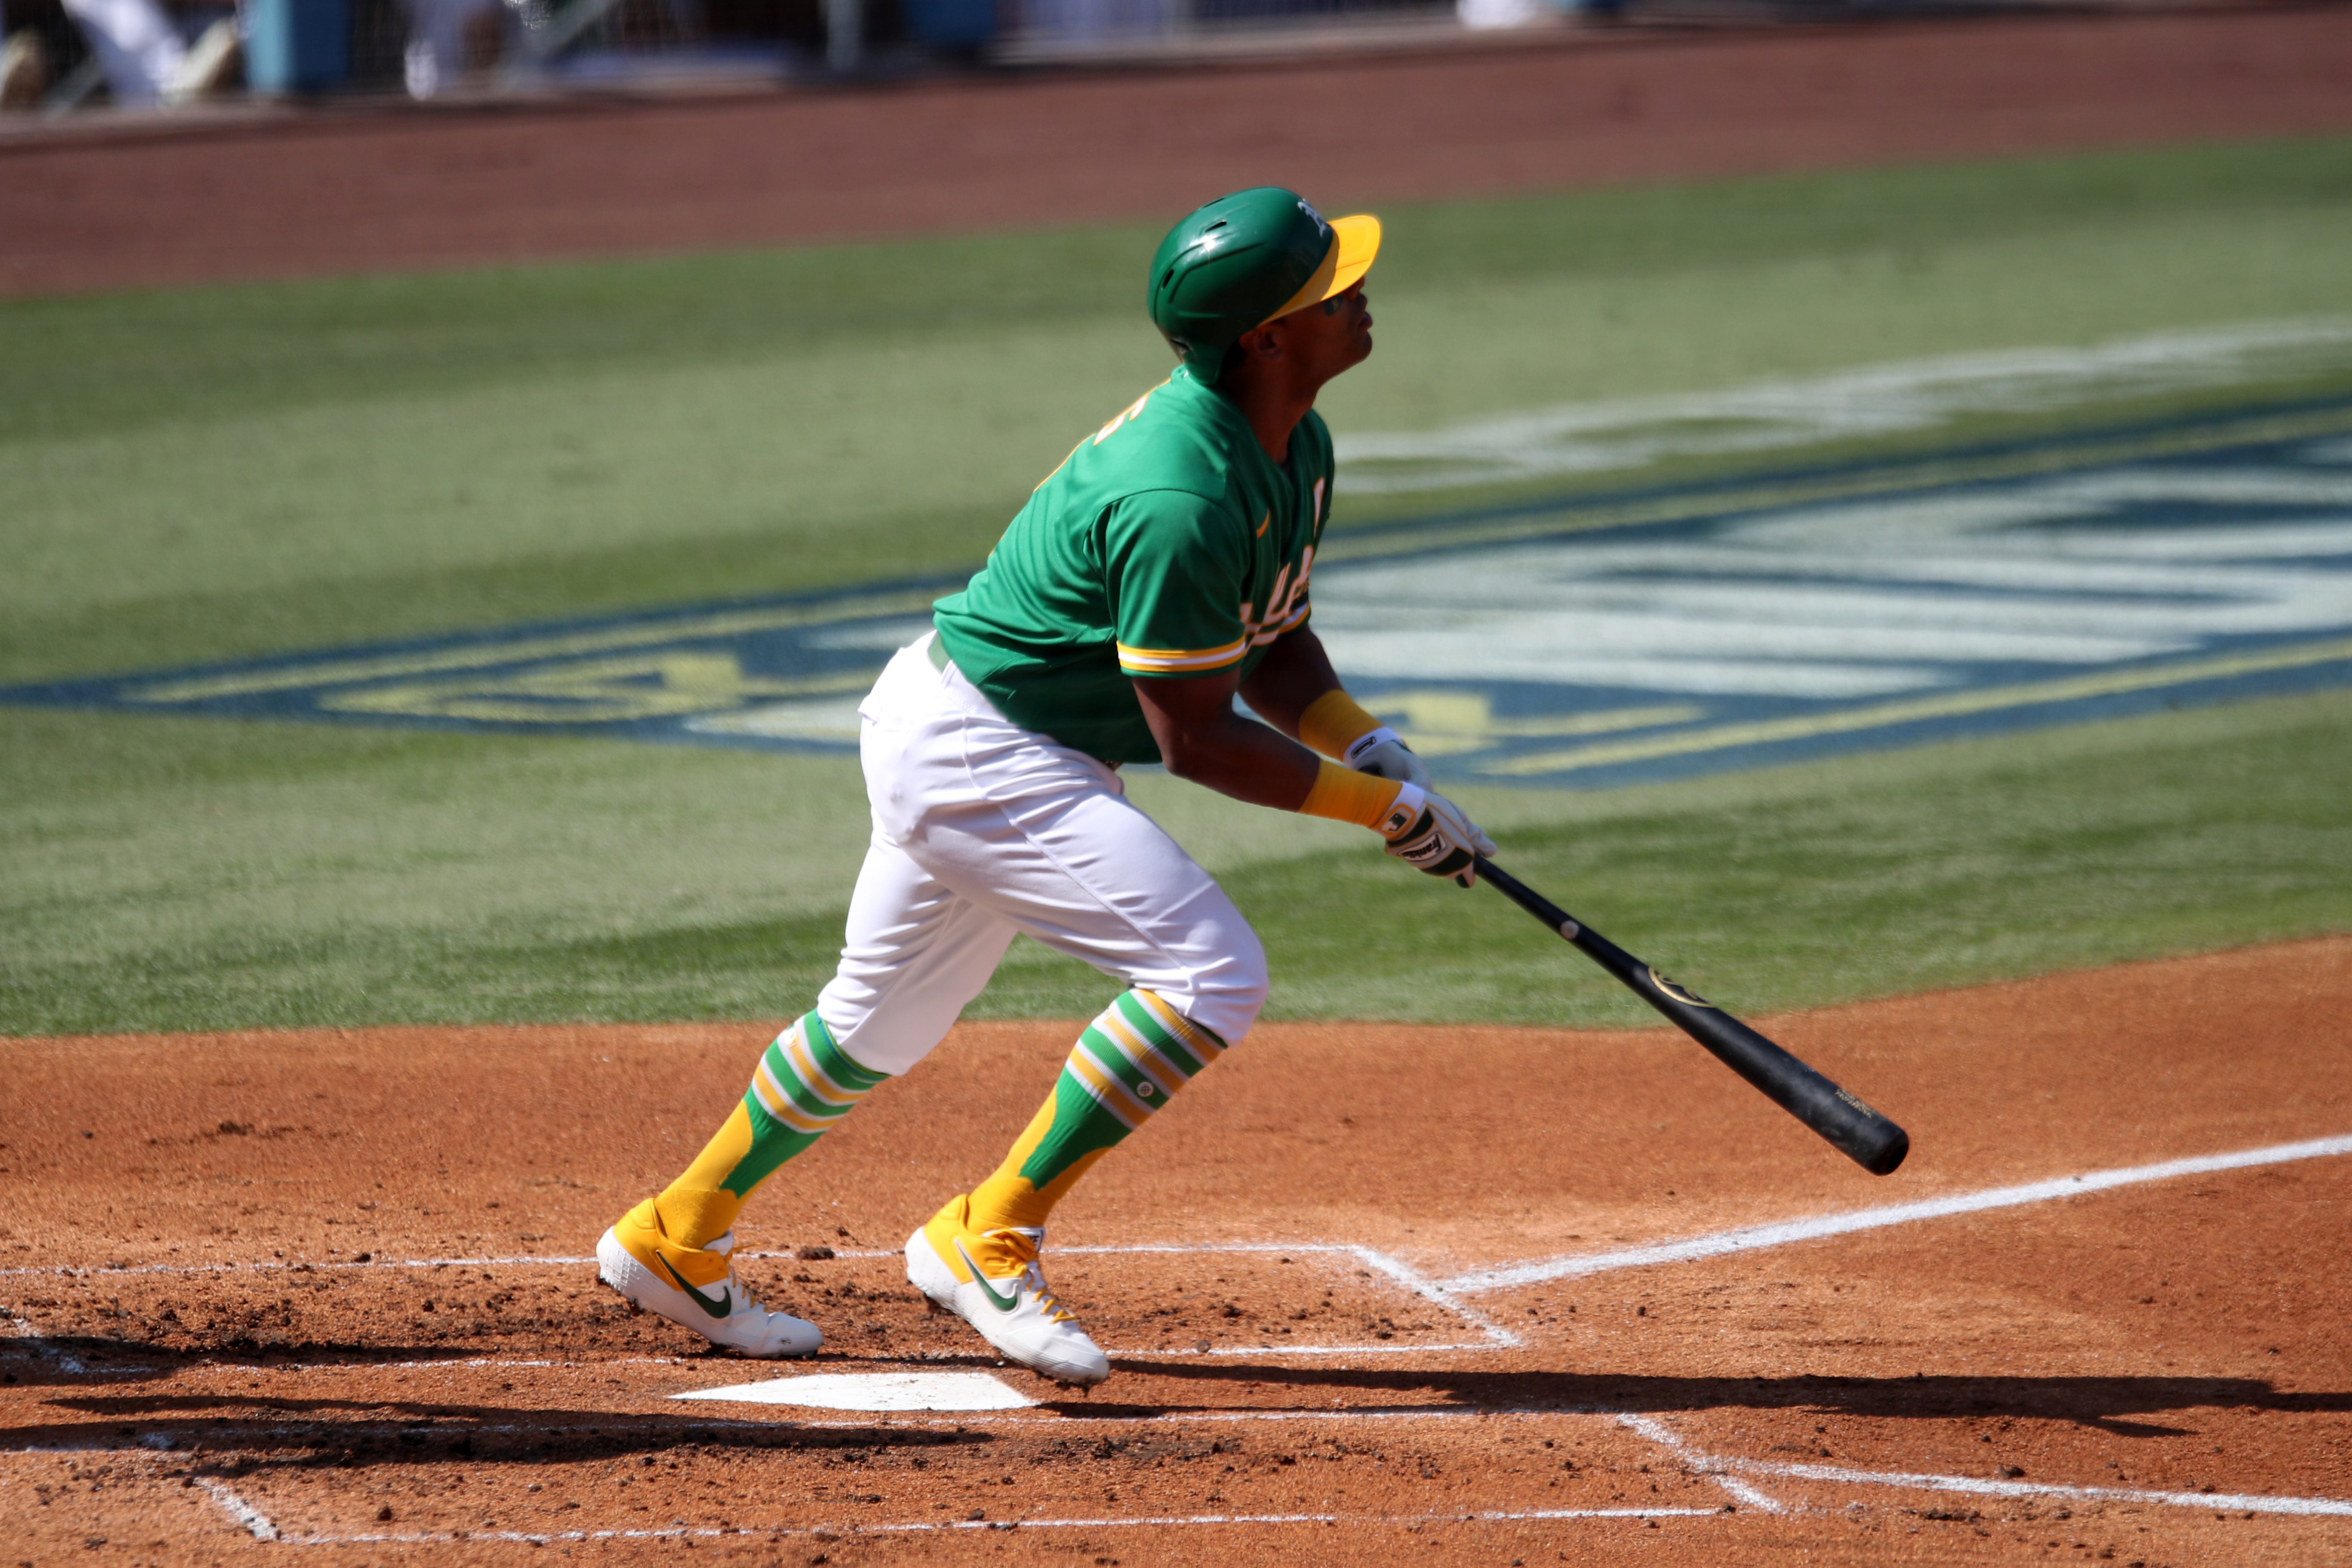 American League Division Series Game 2: Houston Astros v. Oakland Athletics